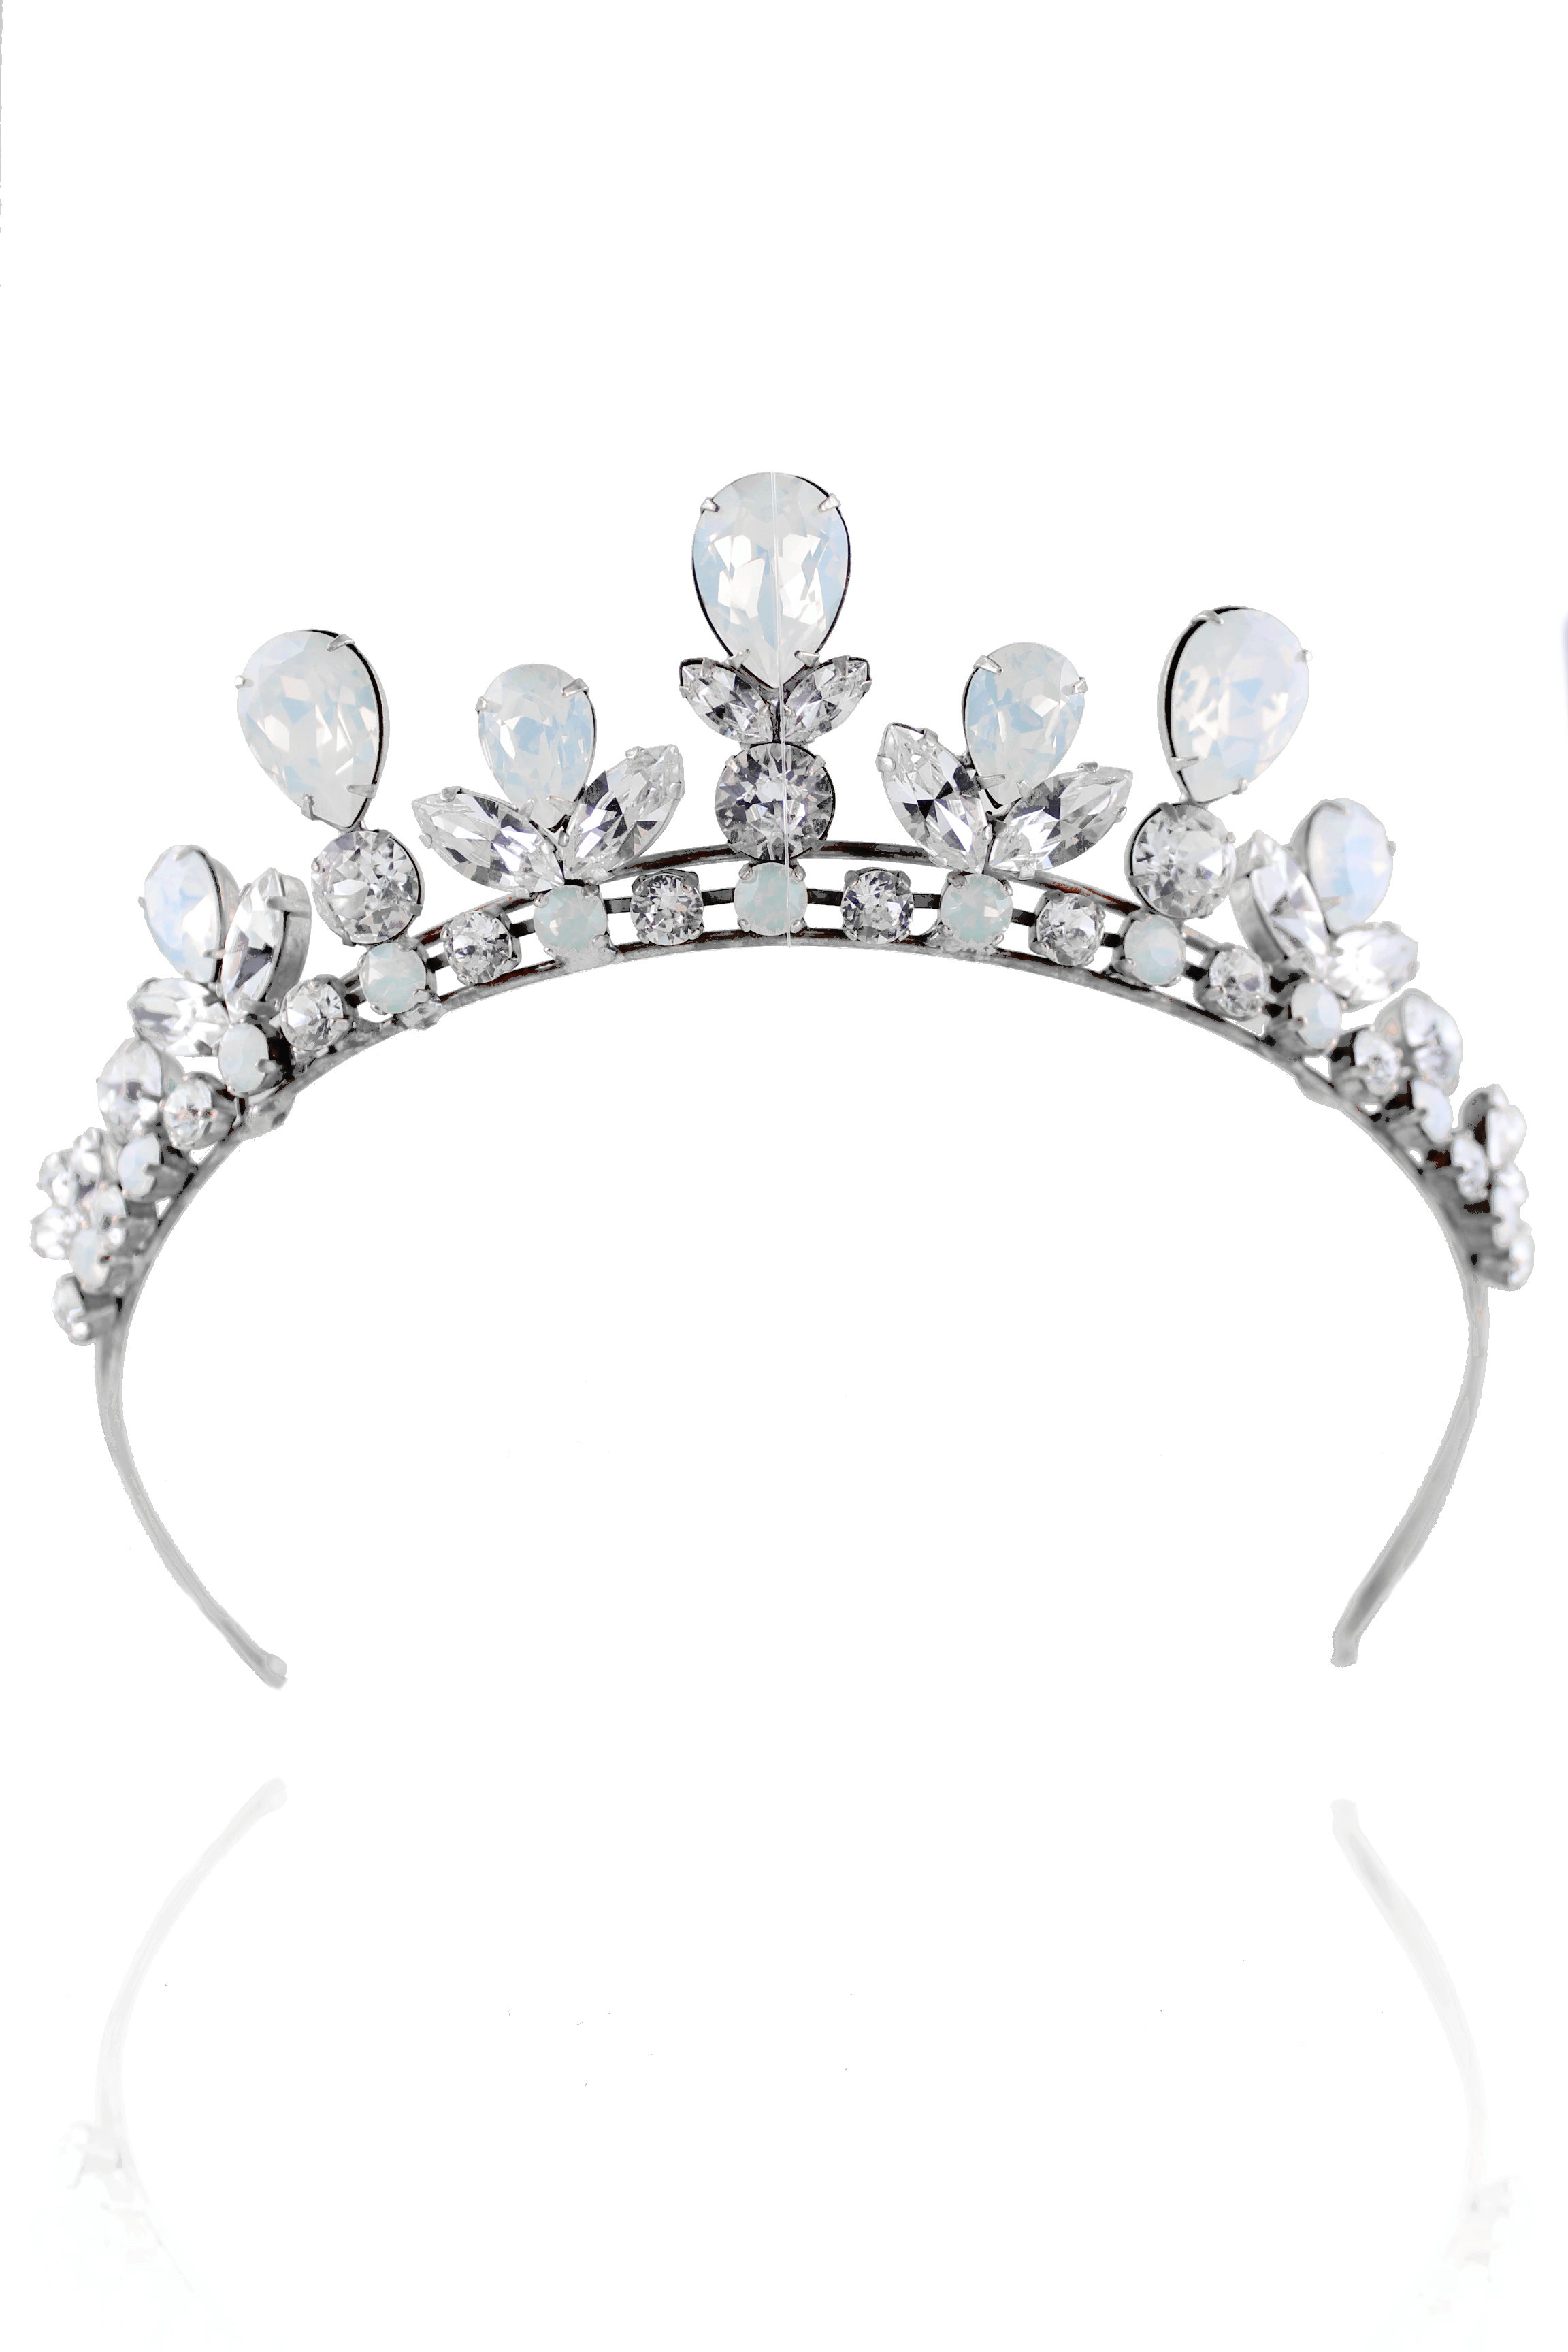 The Arabella Tiara